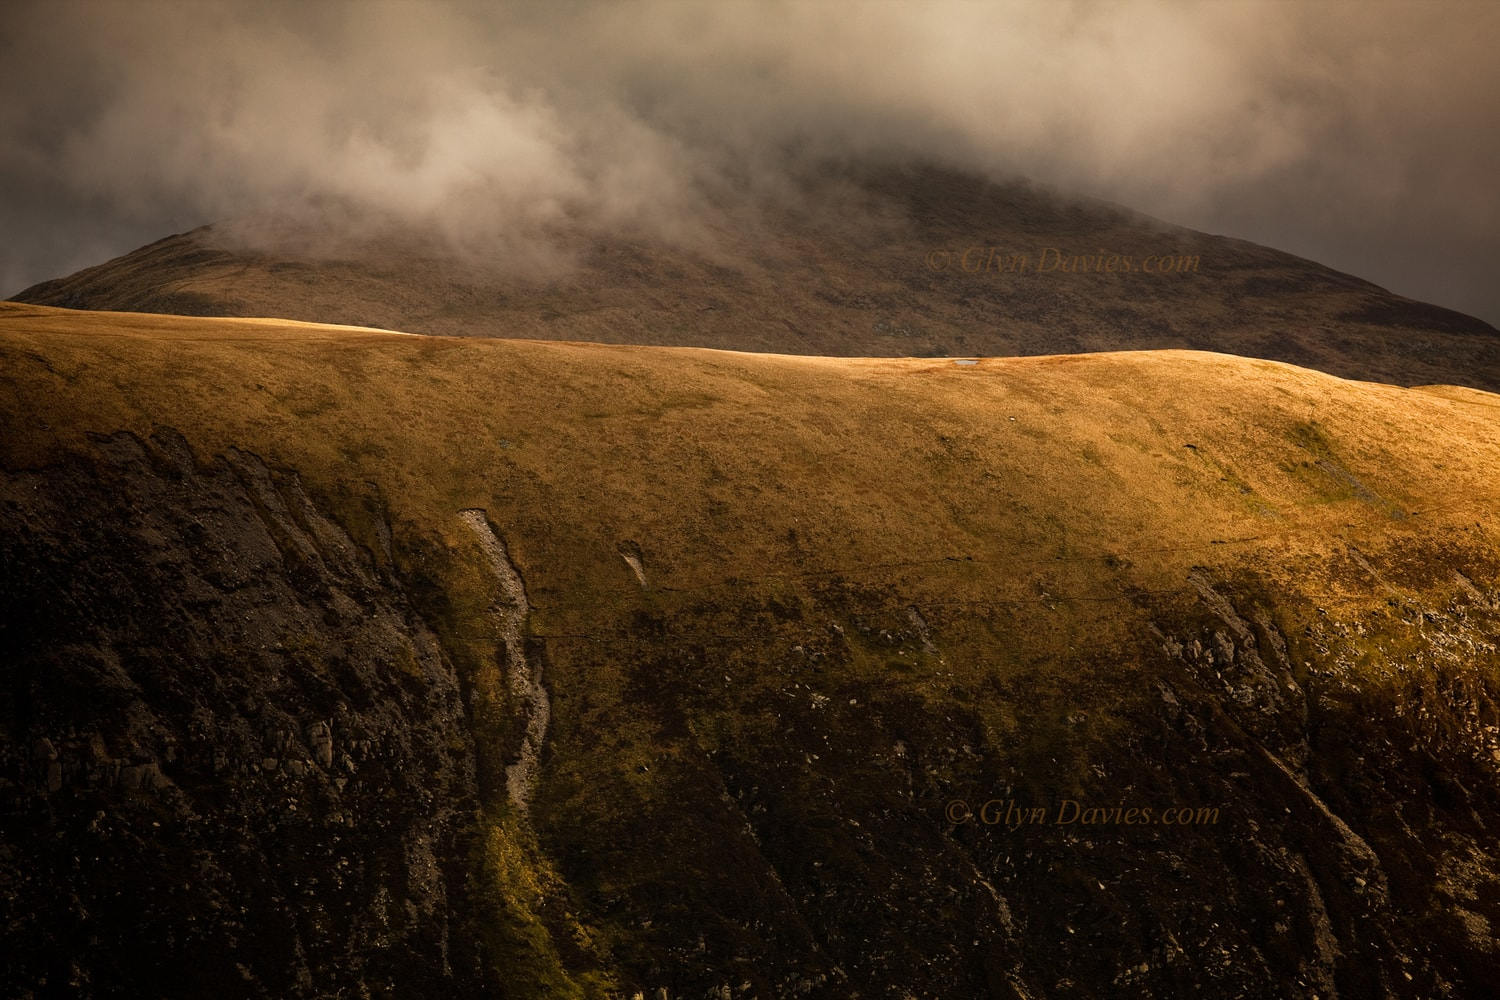 """Temptation"" - Skin-like mountainside, Snowdonia, Wales -  Canon 1DSmk3"